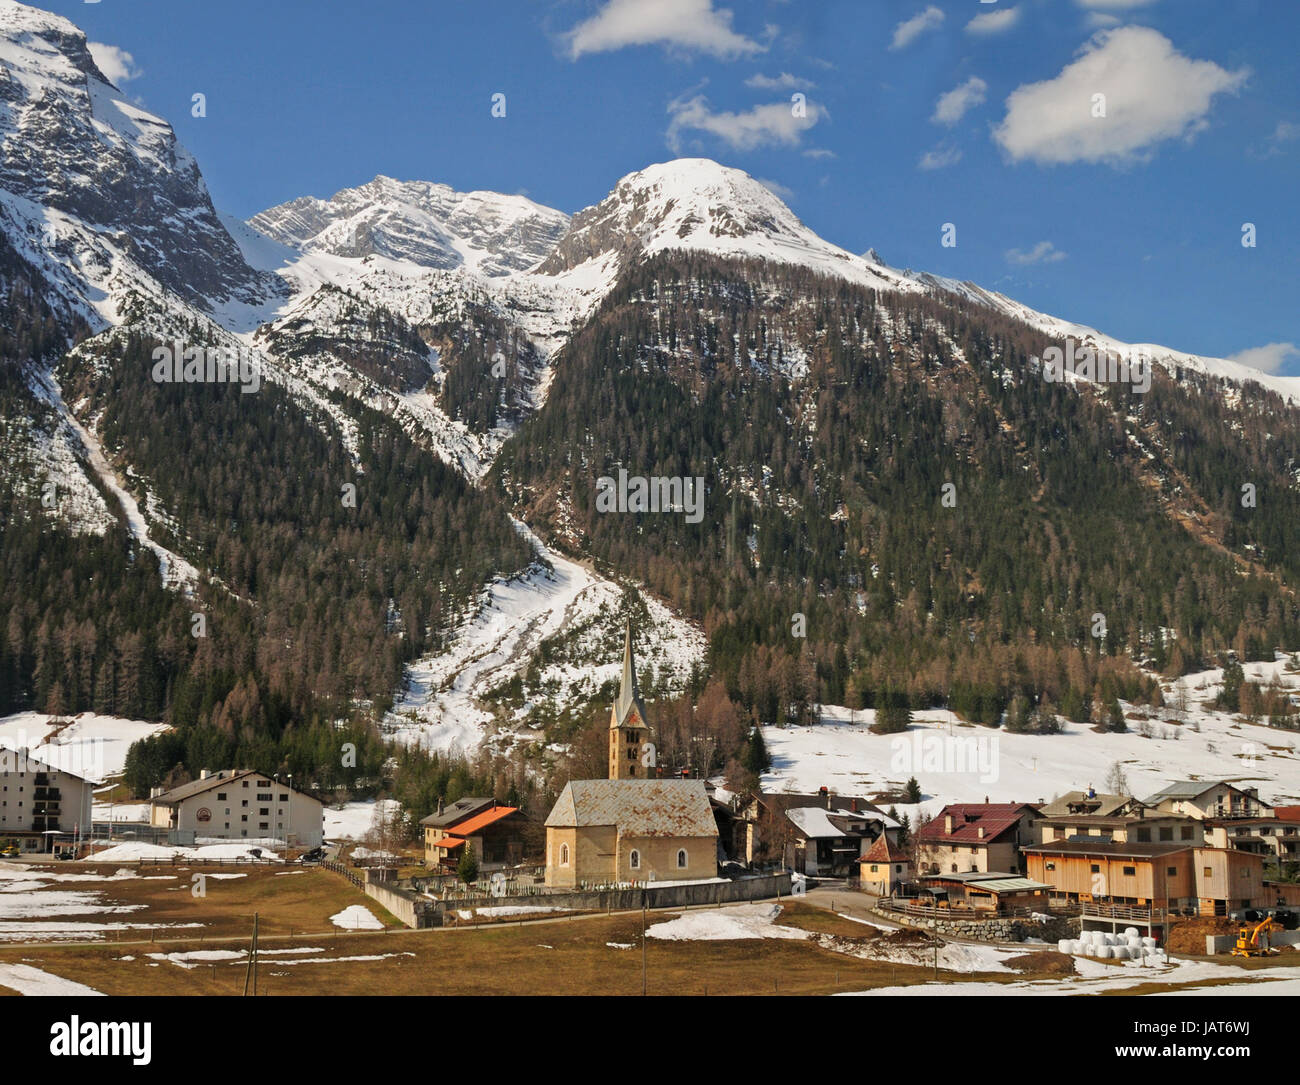 Village of Bergün, Switzerland from the Glacier Express train in the Swiss Alps. - Stock Image